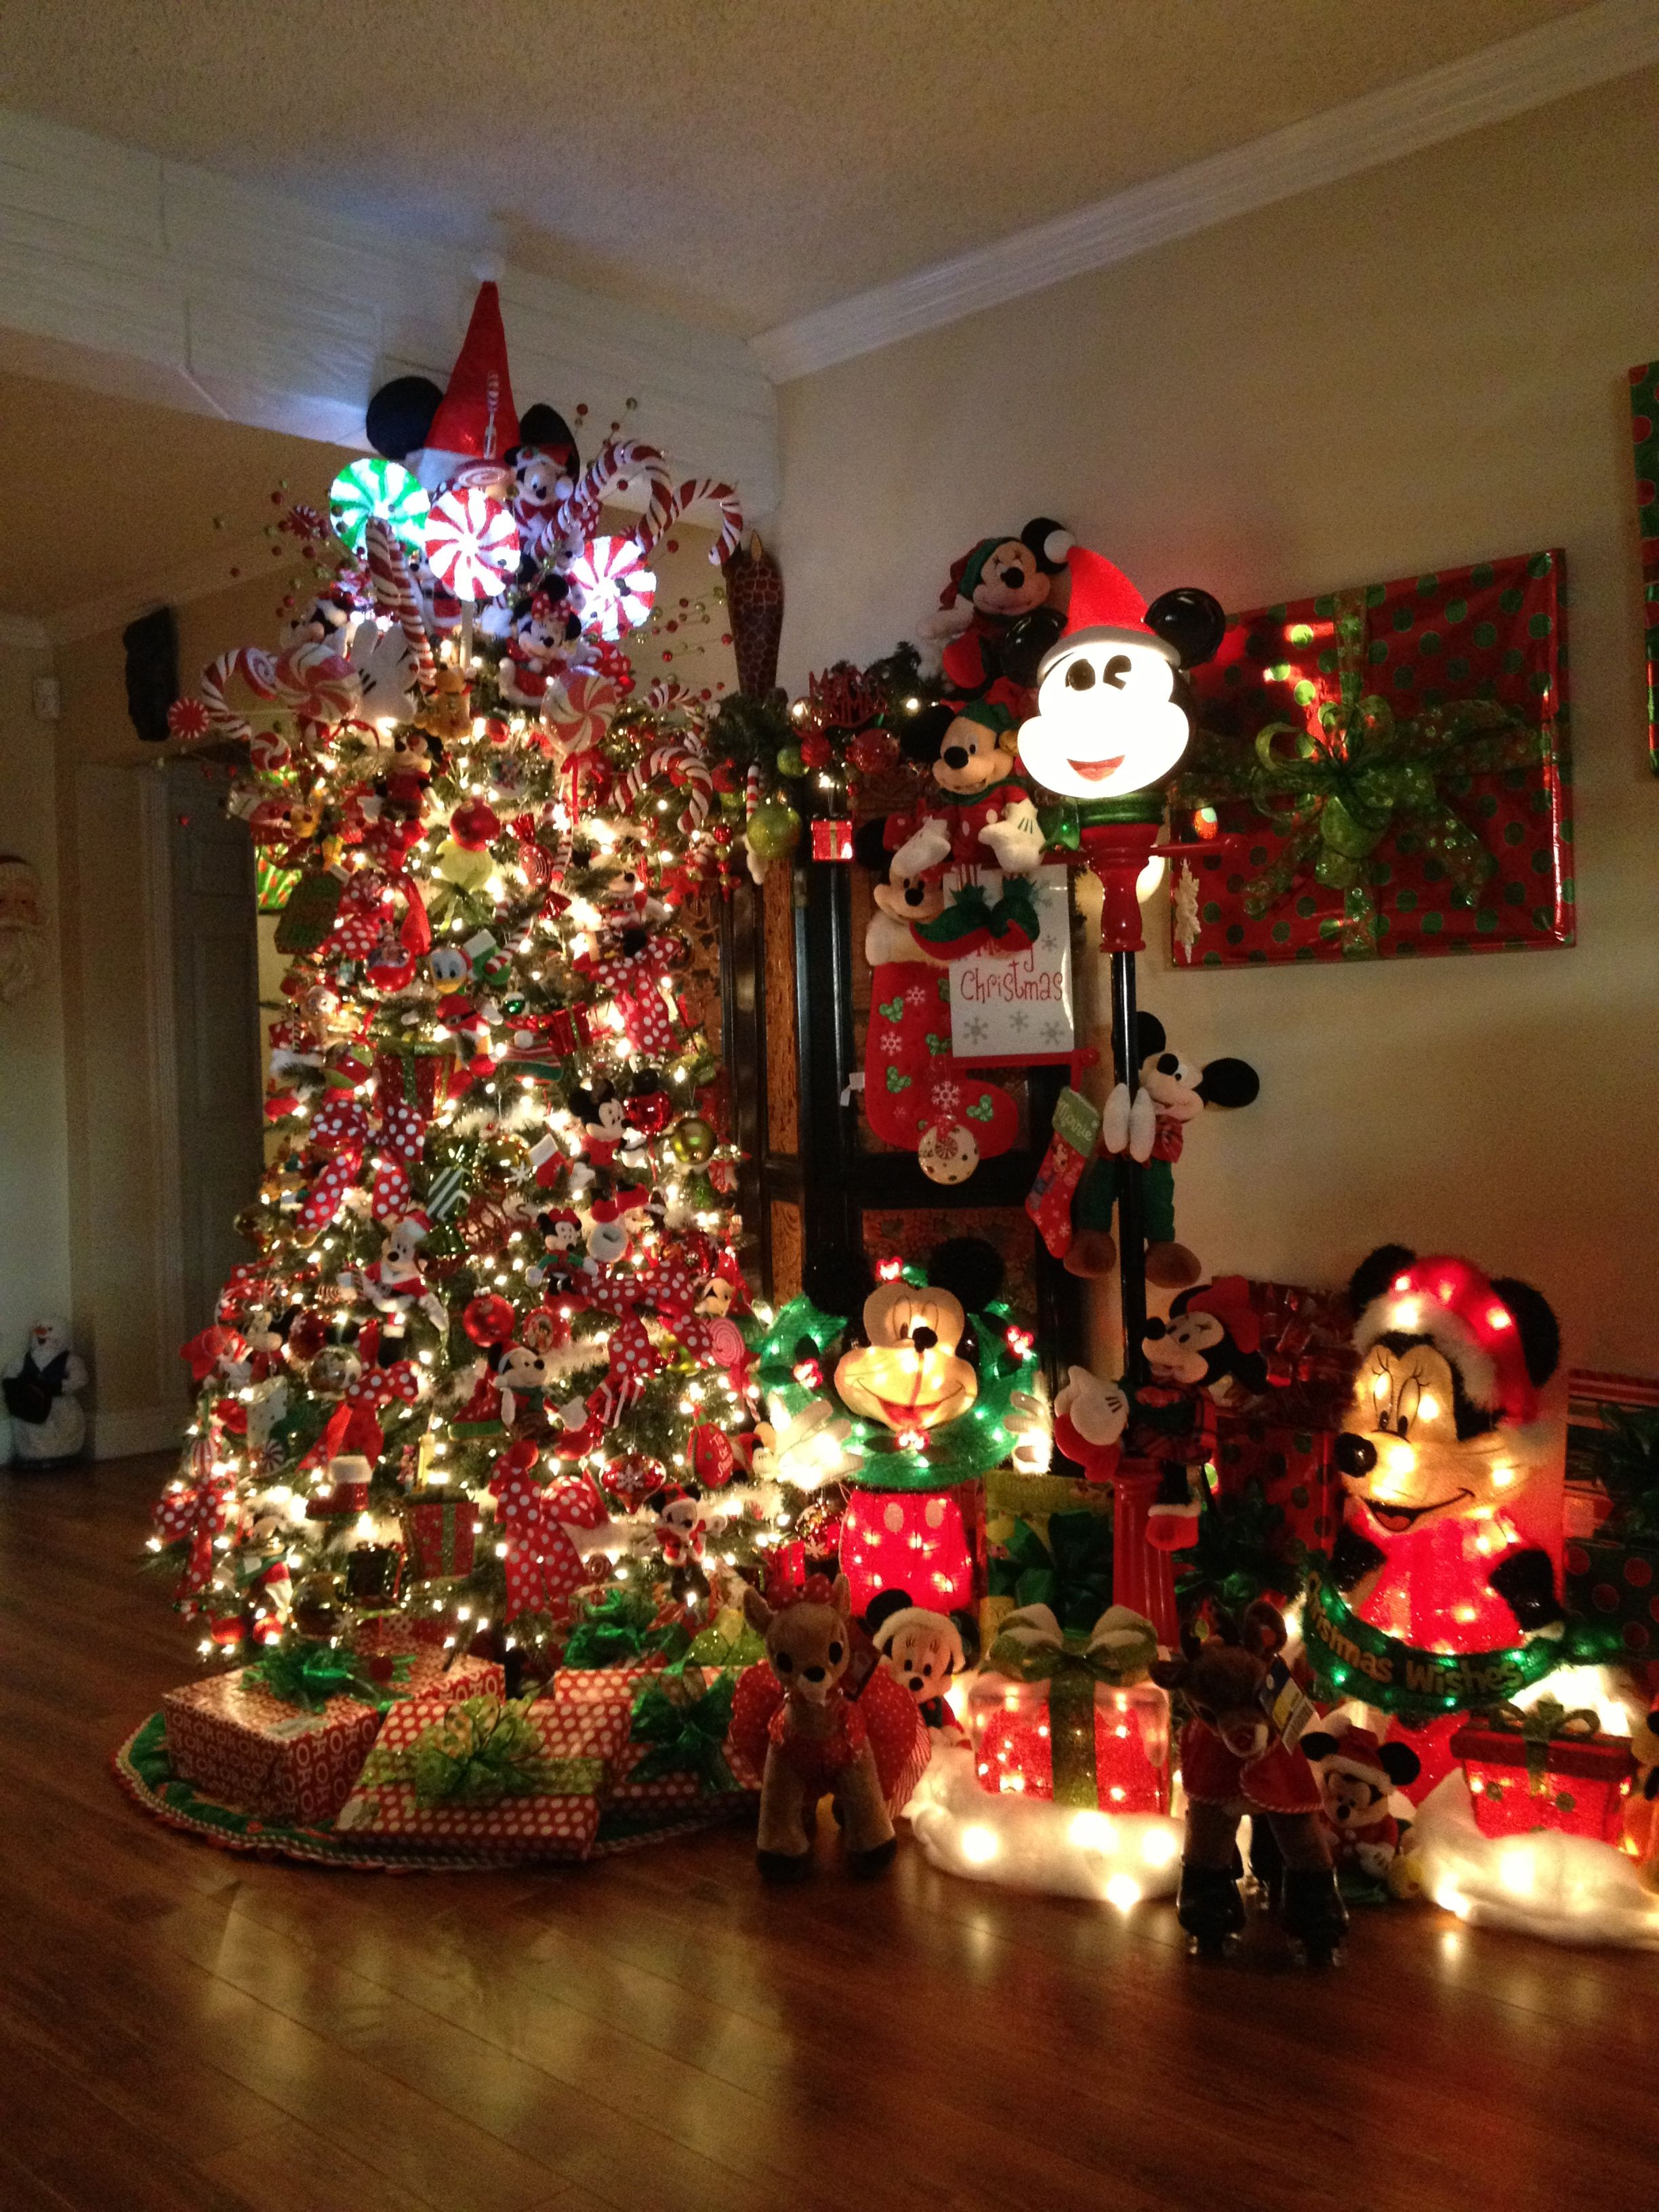 Mickey And Minnie Mouse Christmas Tree Decorations.Awesome Minnie And Mickey Mouse Christmas Tree Decorations